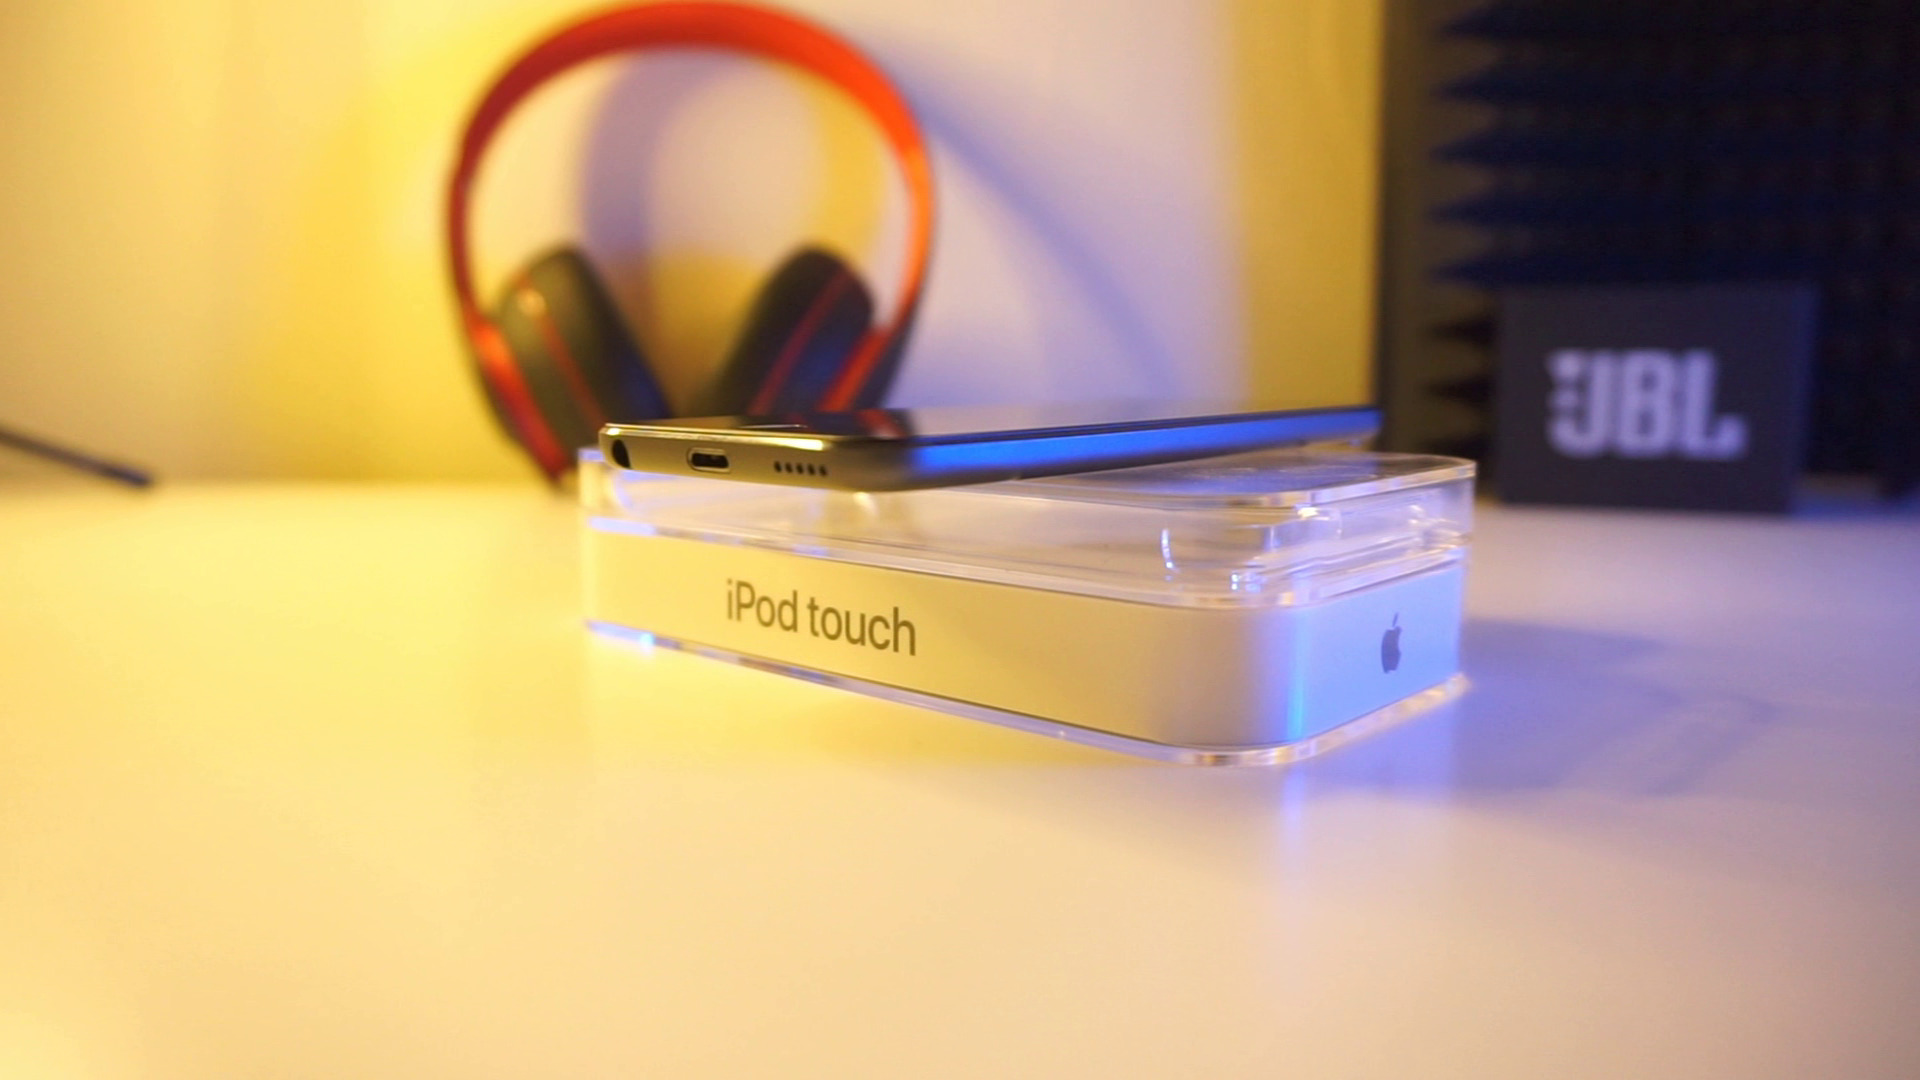 ipod-touch (1)